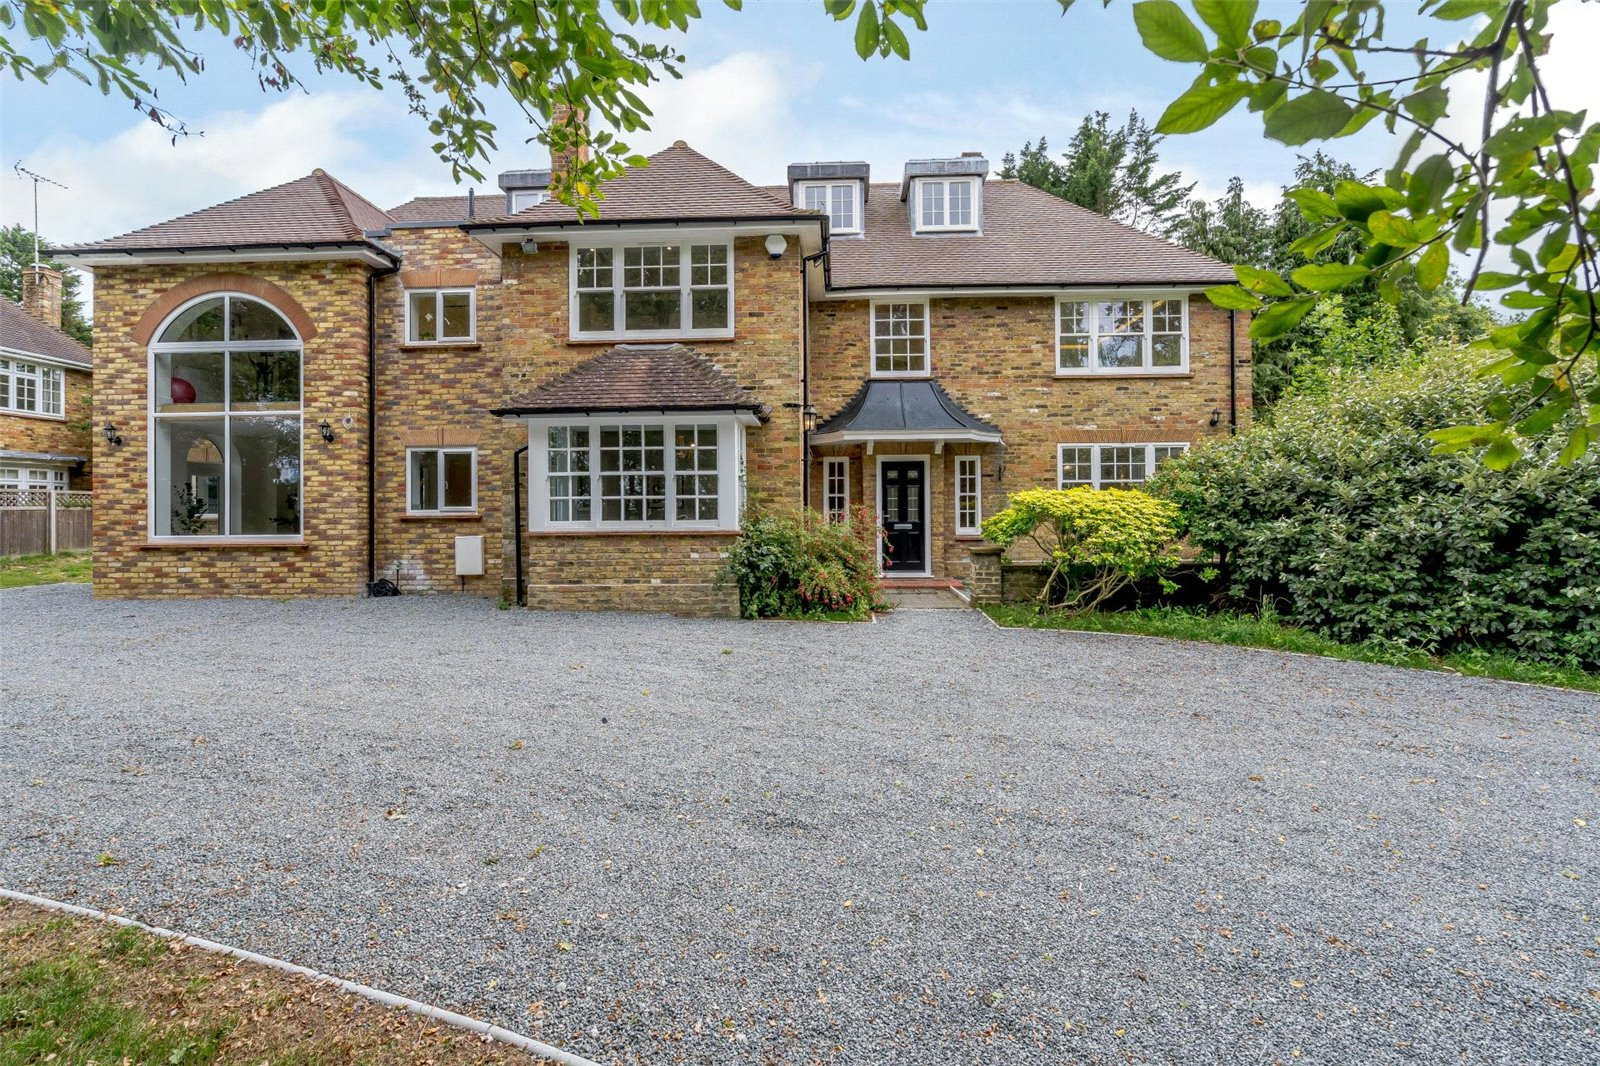 substantial executive style house in Chorleywood, Rickmansworth, Hertfordshire